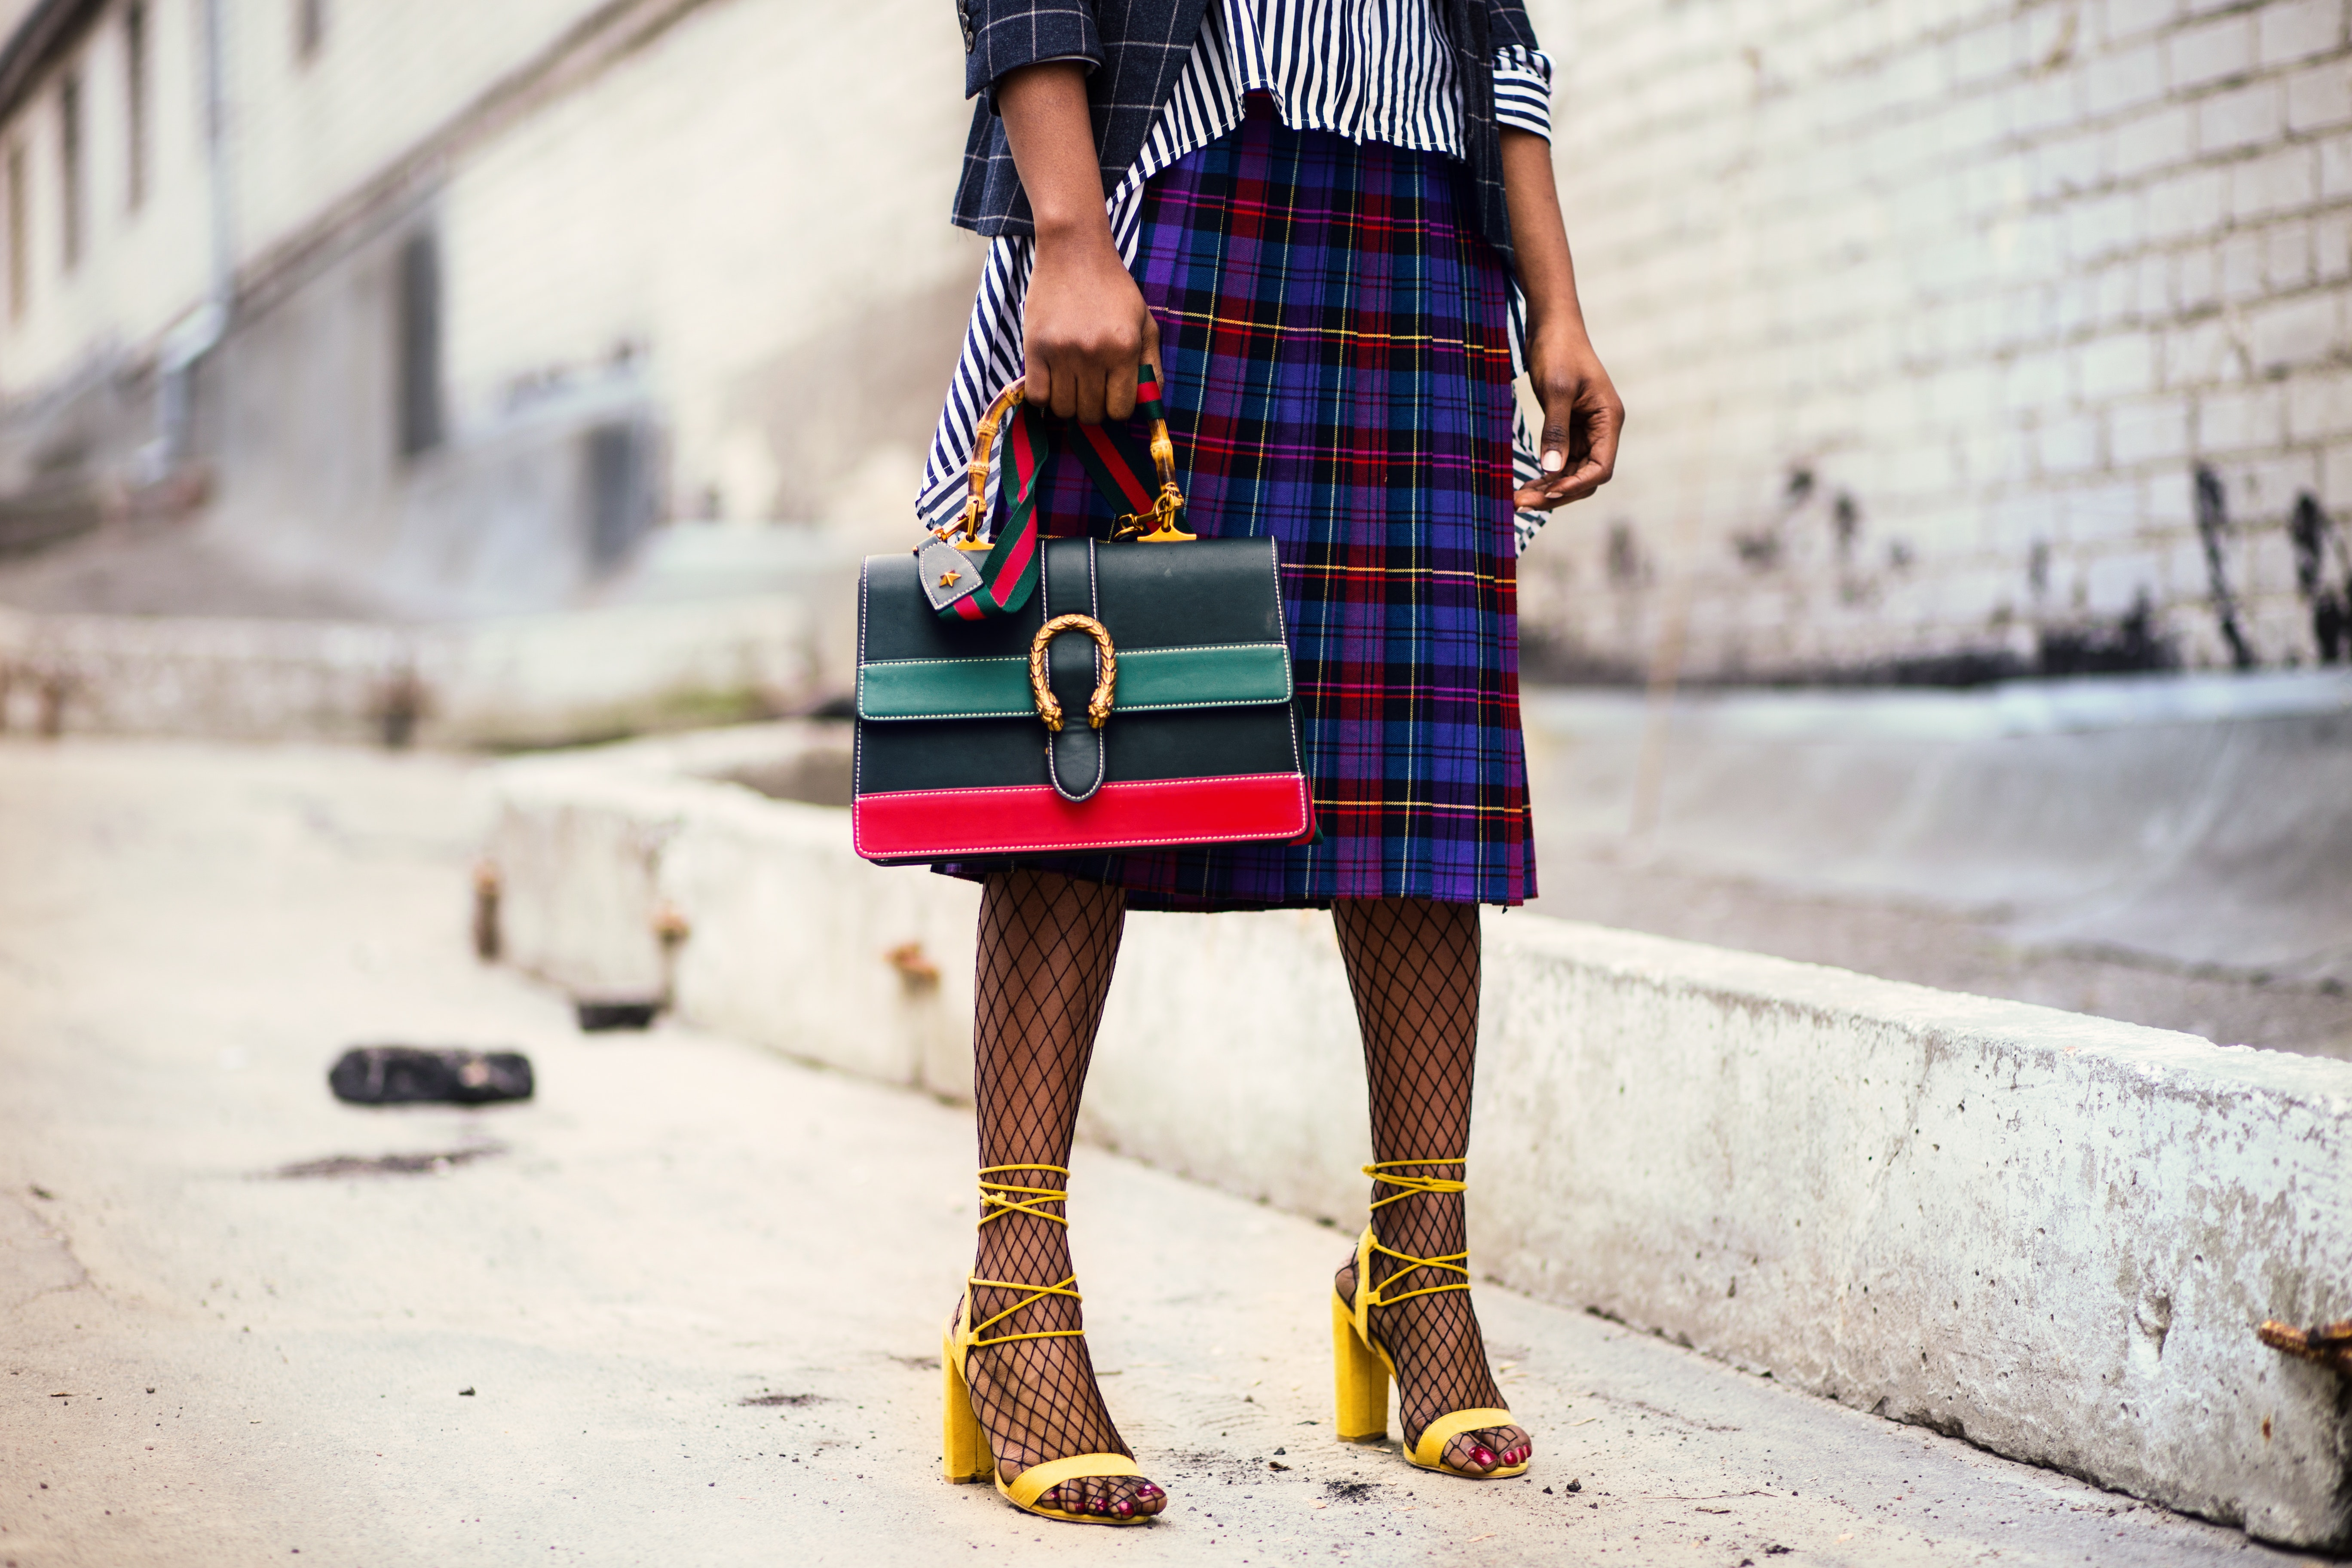 Woman Holding Green and Red Leather Handbag, Bag, Street, Plaid, Road, HQ Photo